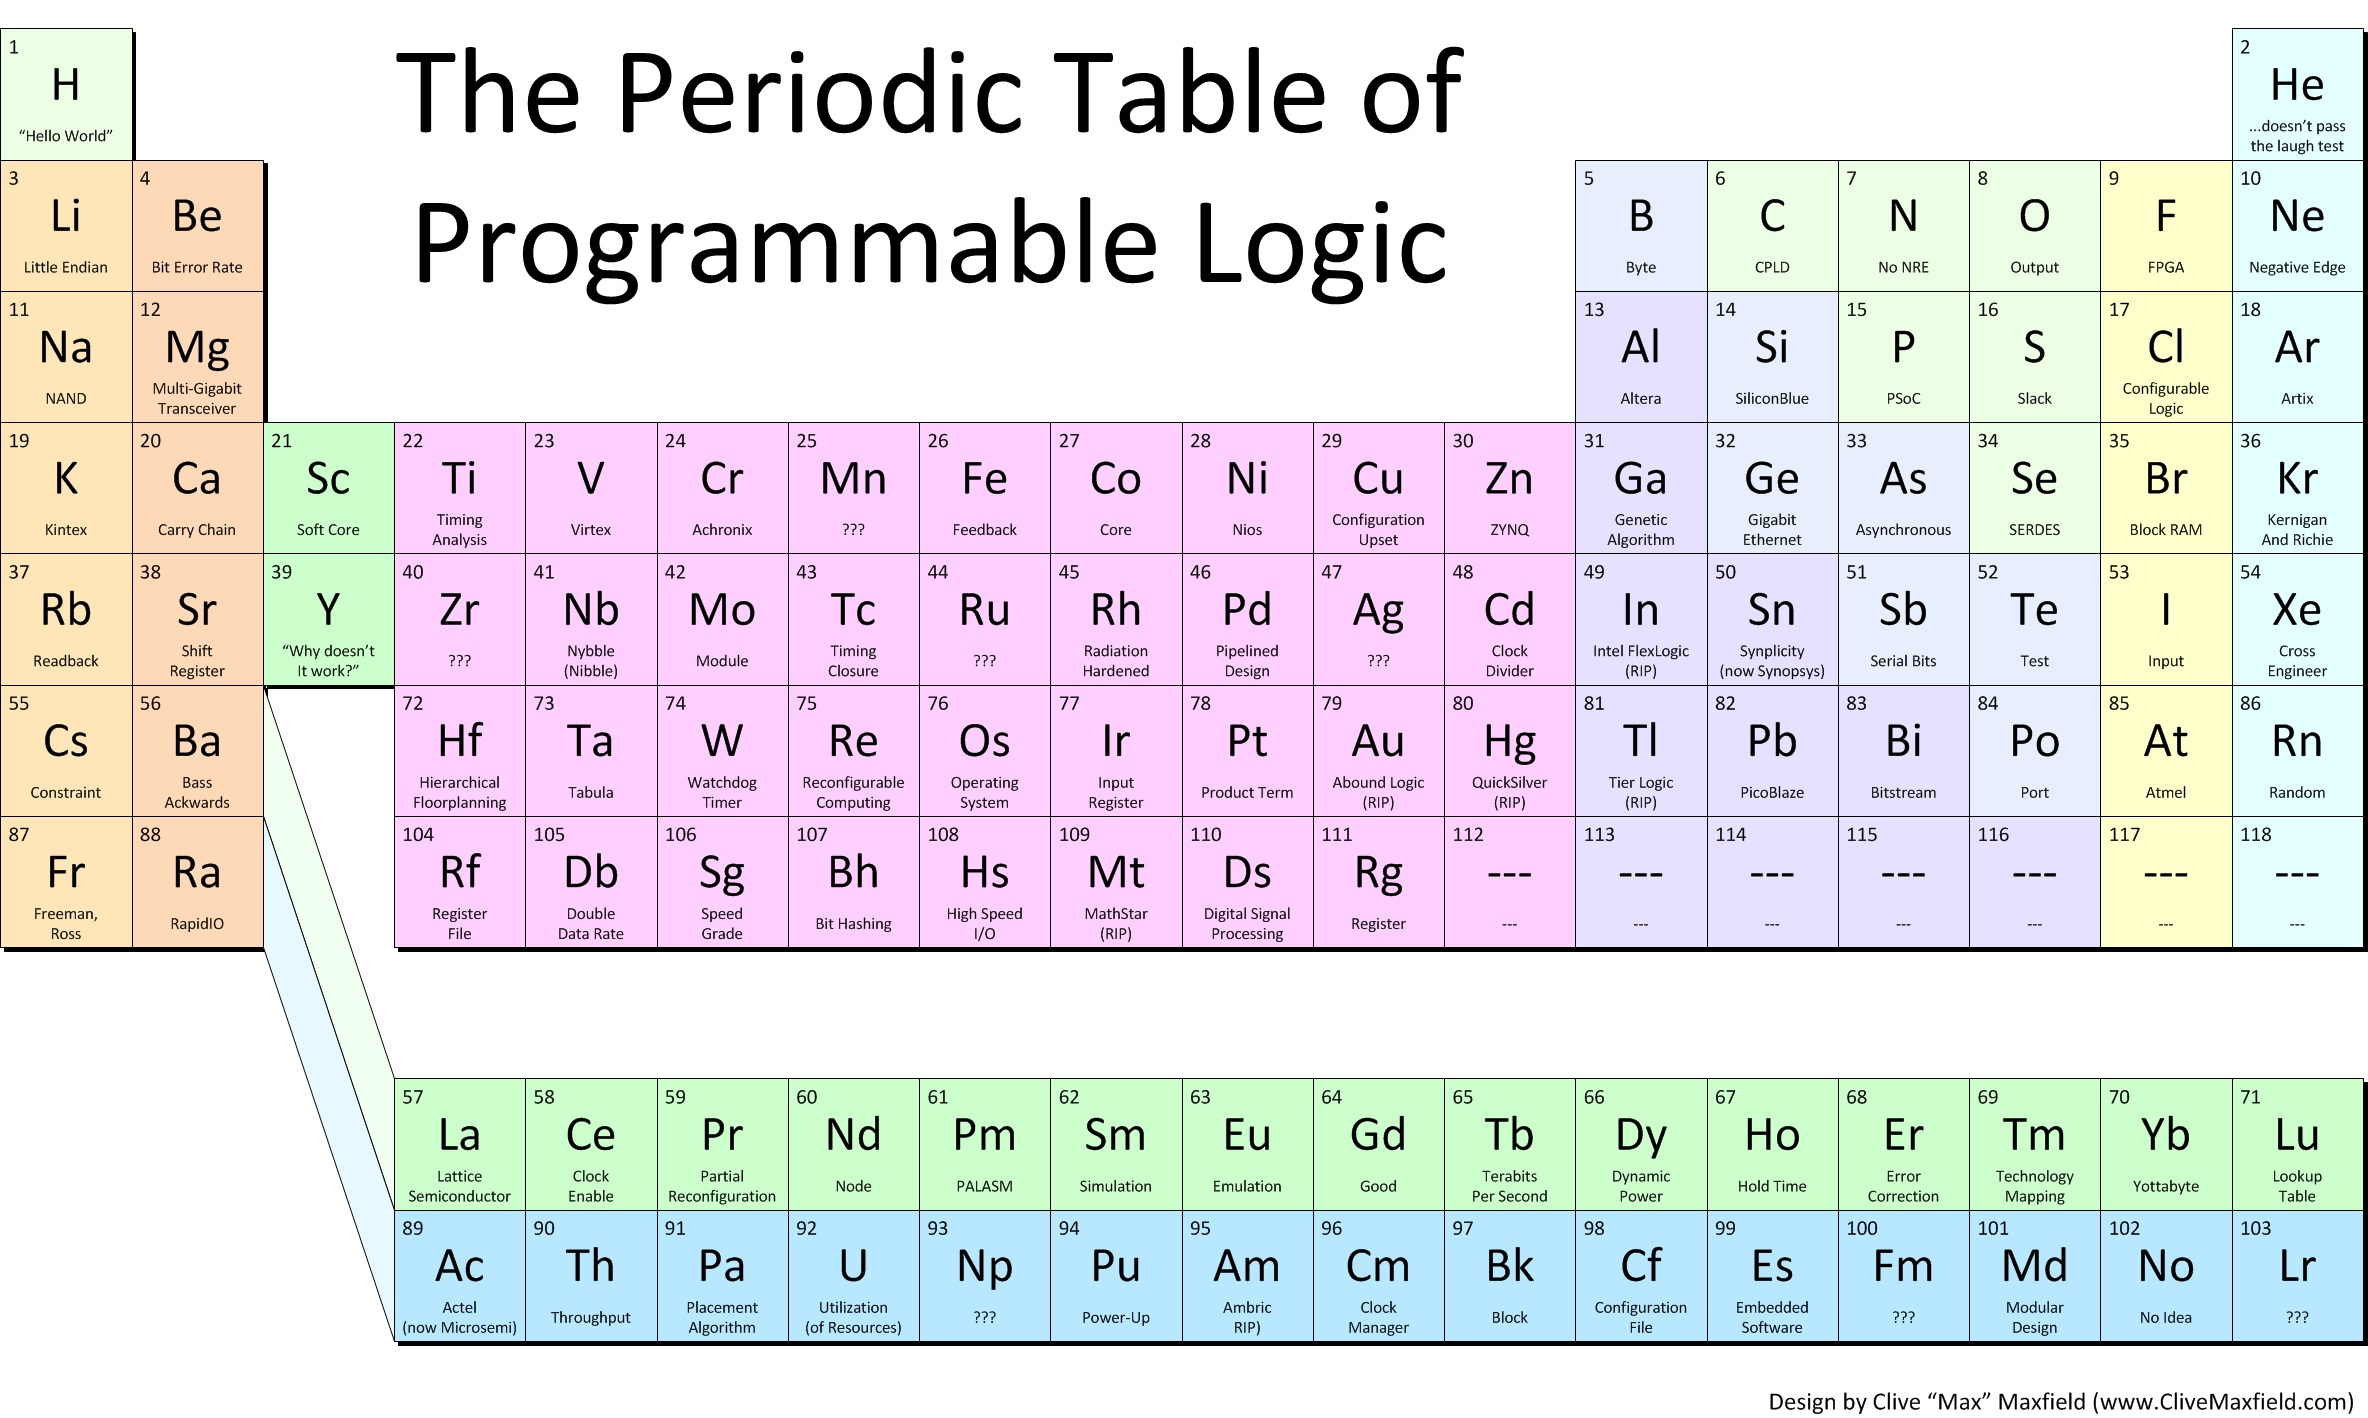 The periodic table of programmable logic rev 2 ee times as youll see we are still missing some elements also we want to get rid of specific product names gamestrikefo Images